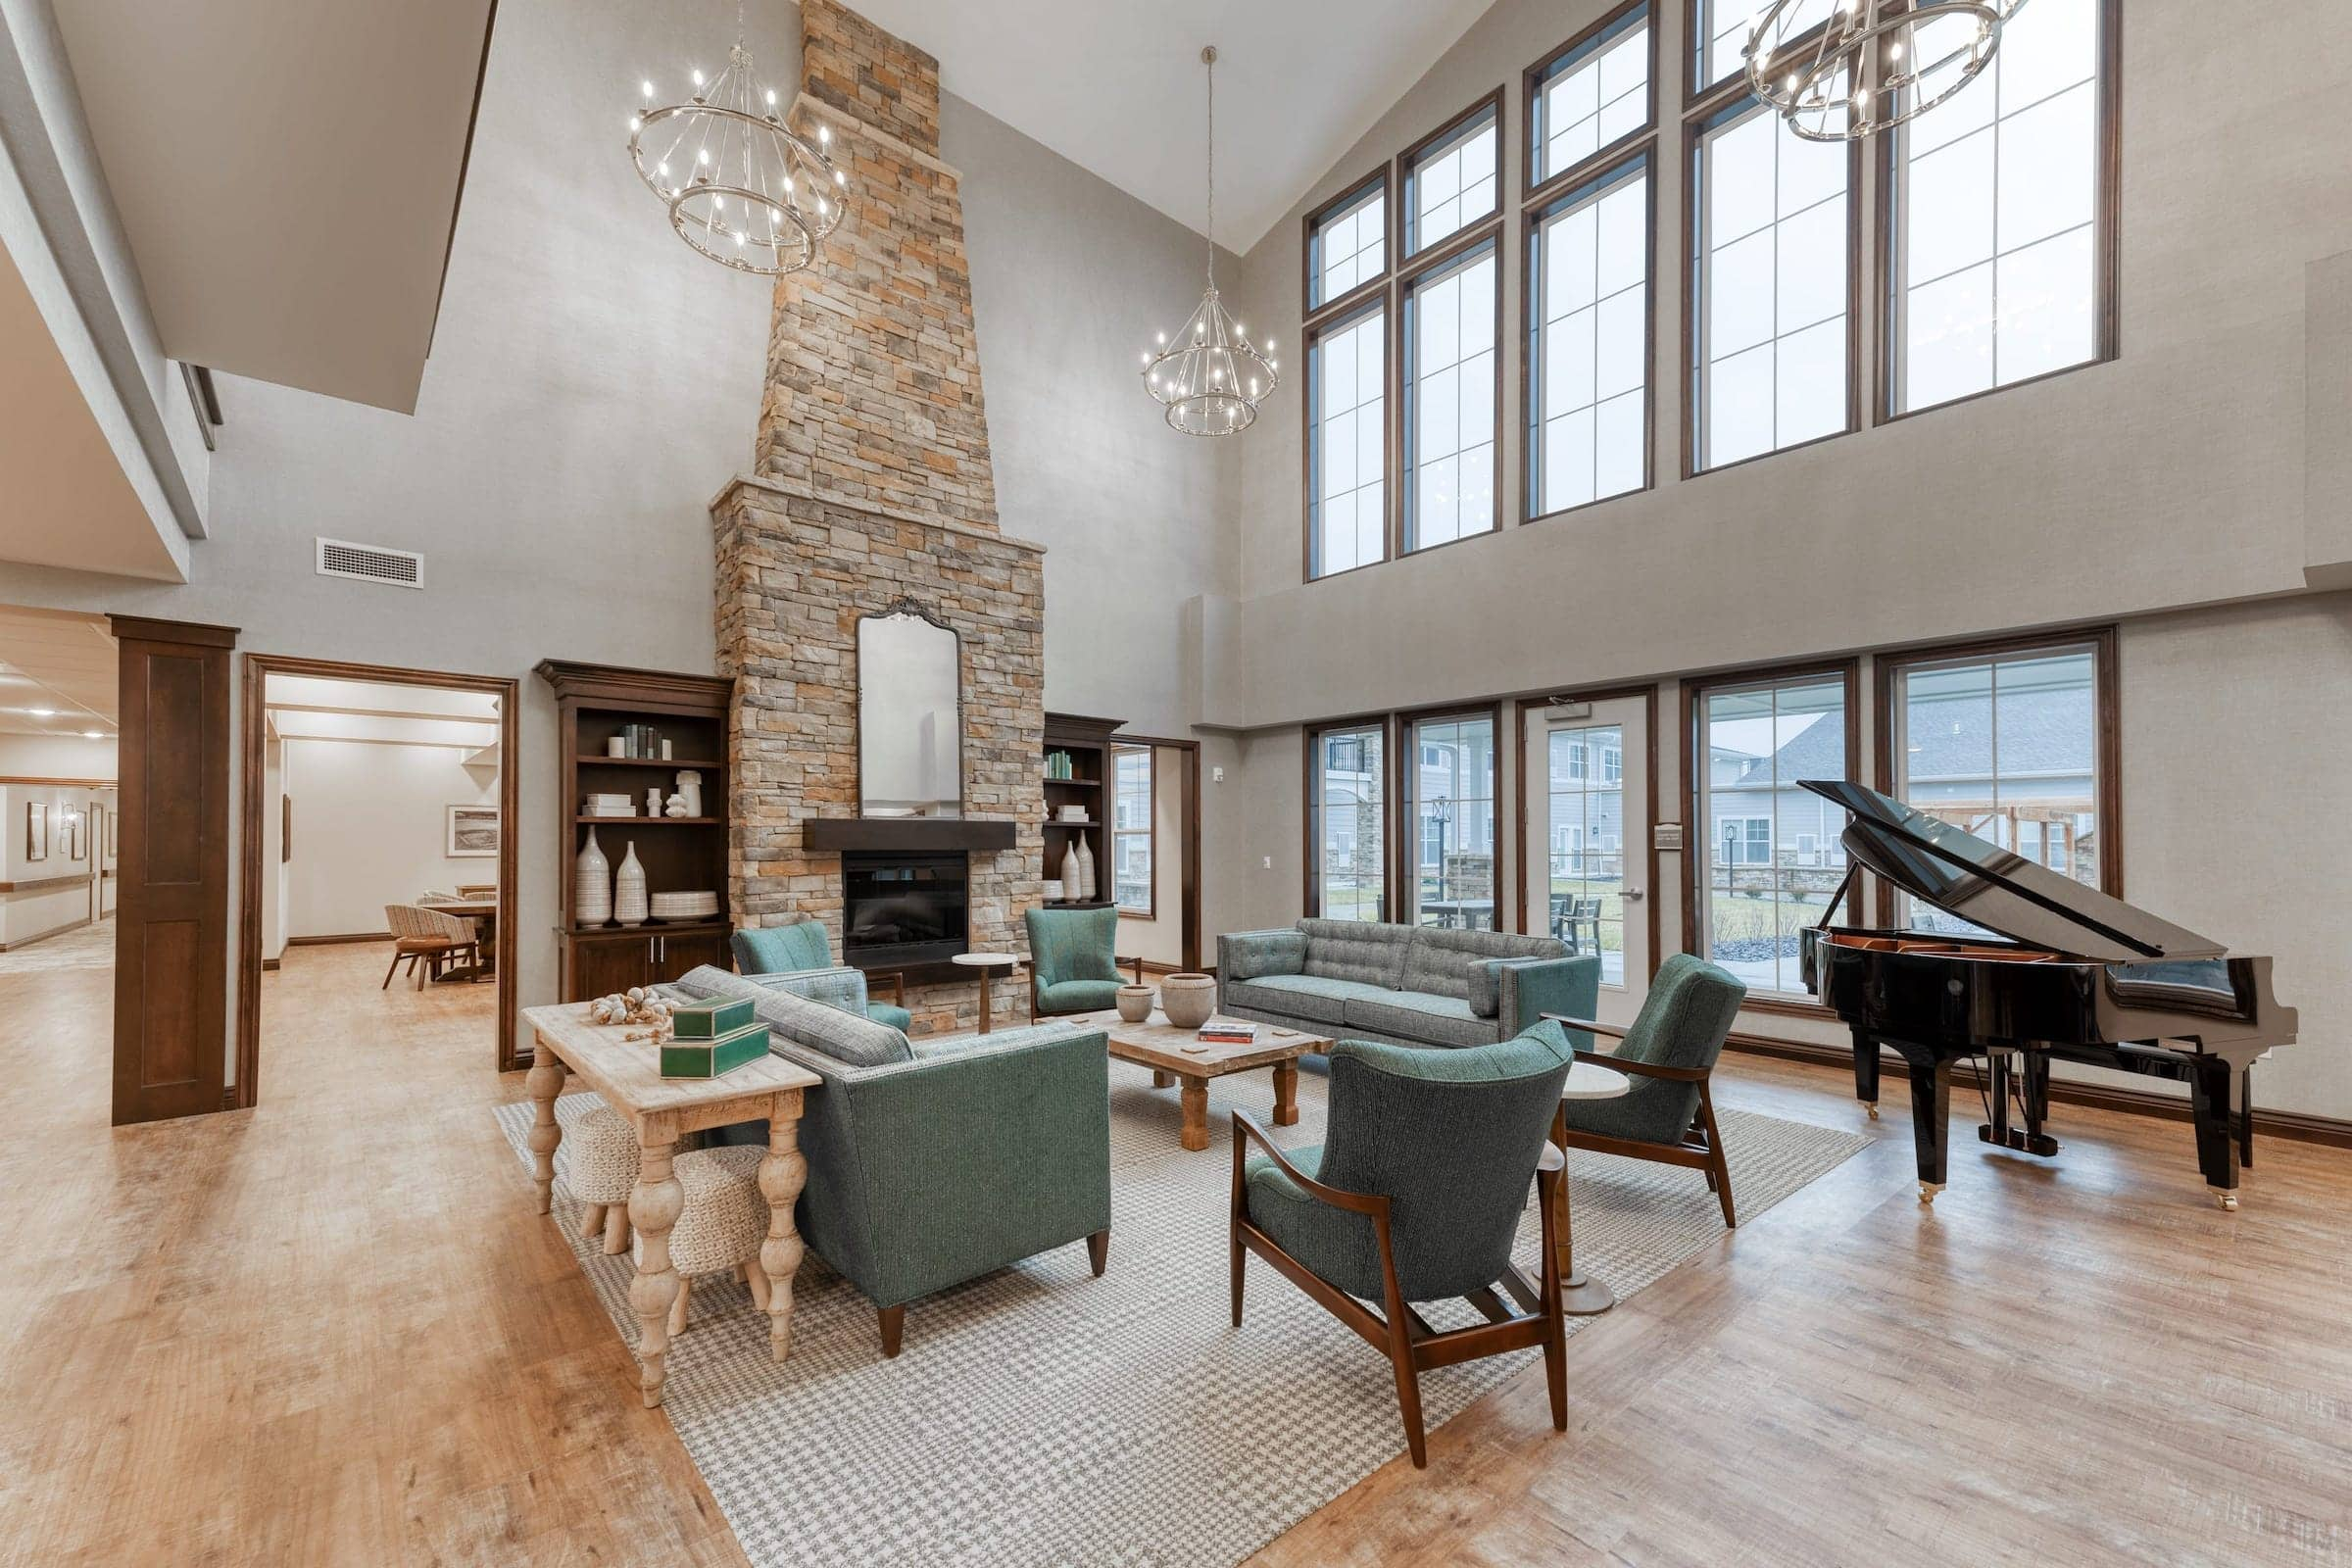 Open community space featuring a stone fireplace and communal piano